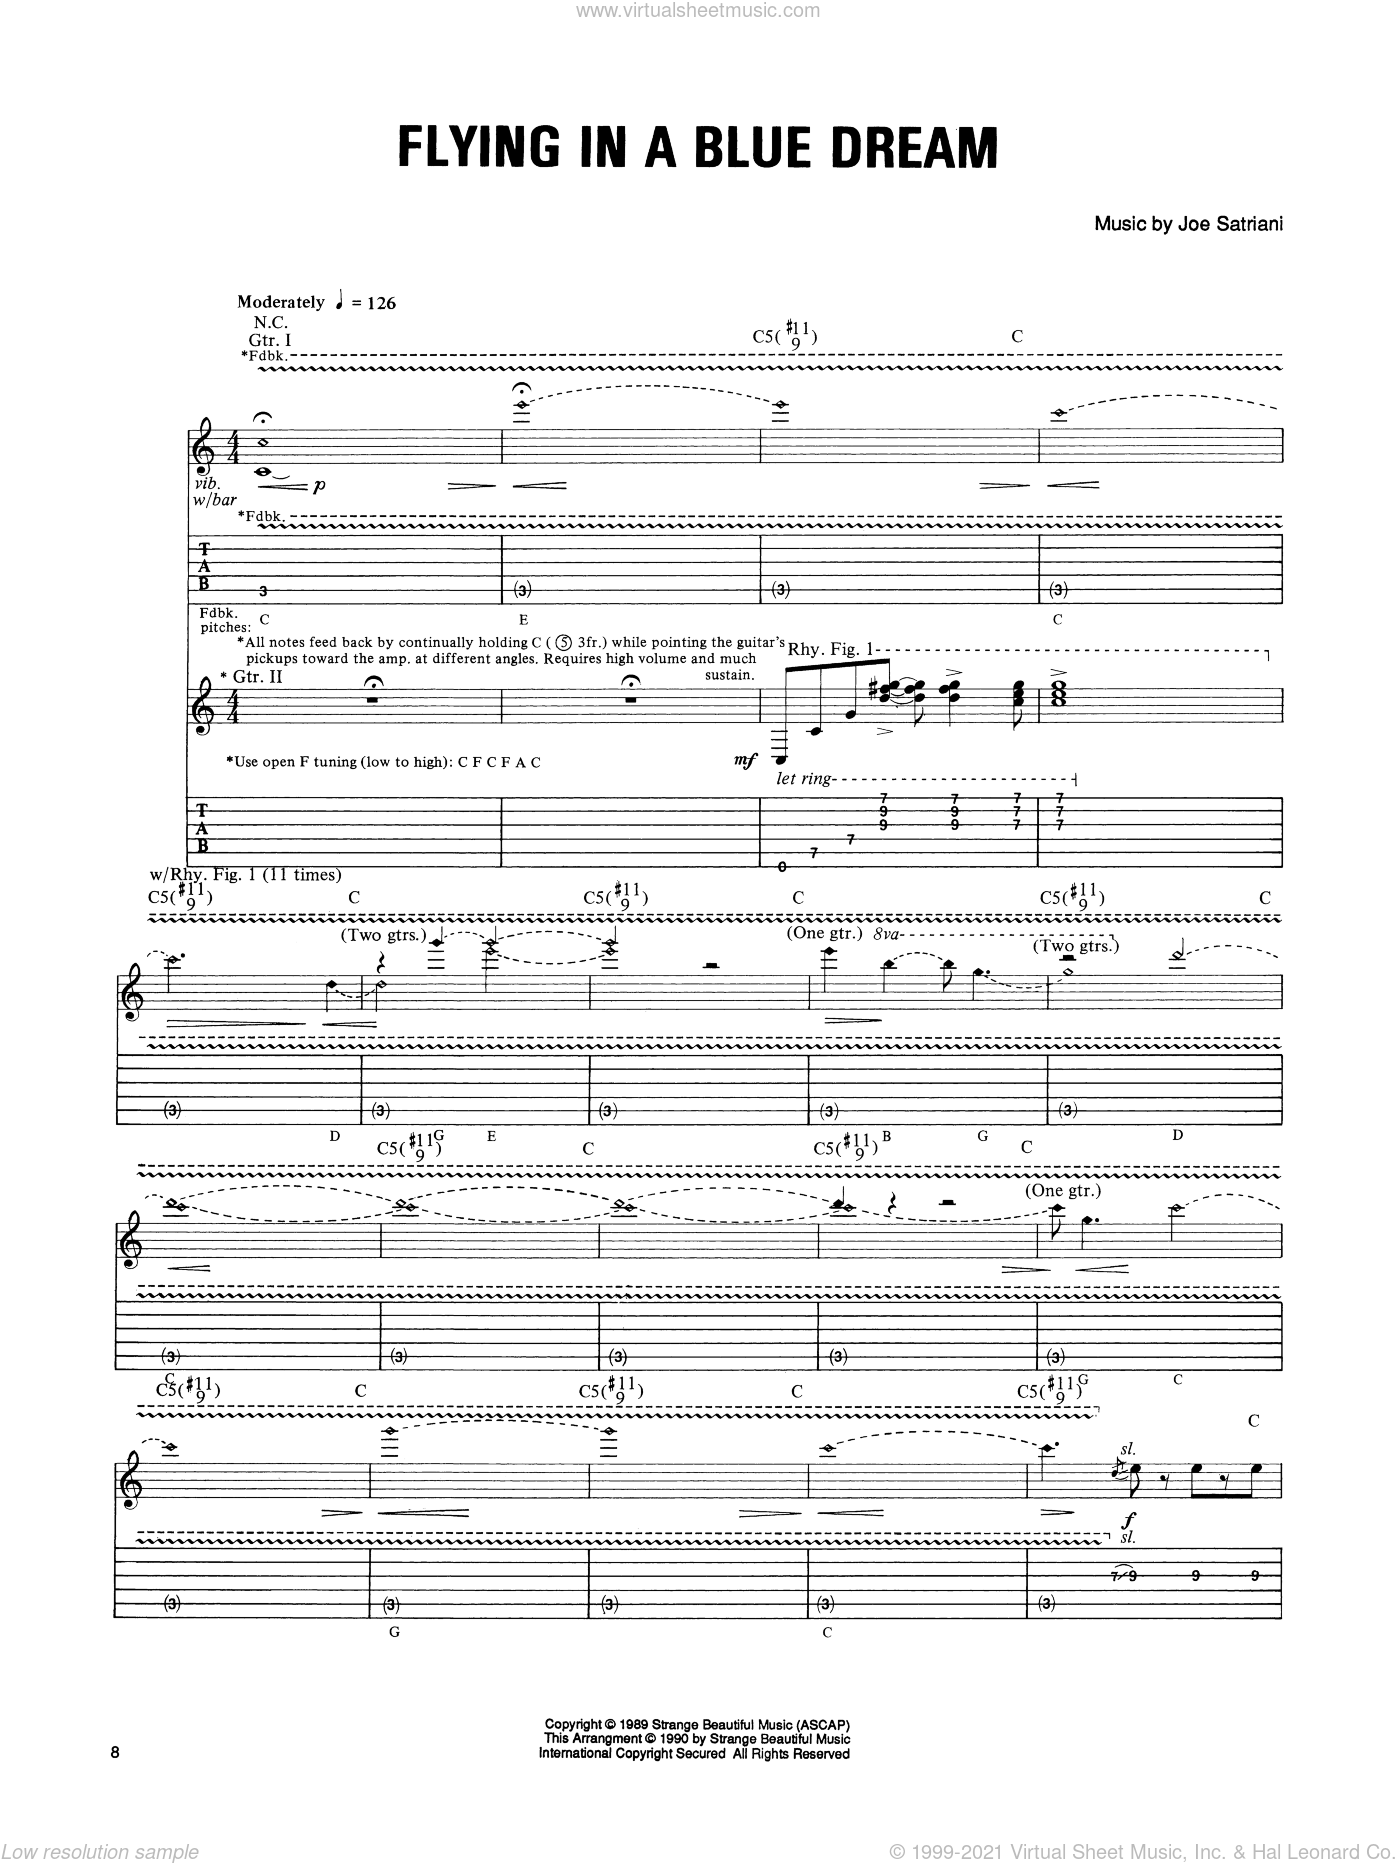 Flying In A Blue Dream sheet music for guitar (tablature) by Joe Satriani. Score Image Preview.